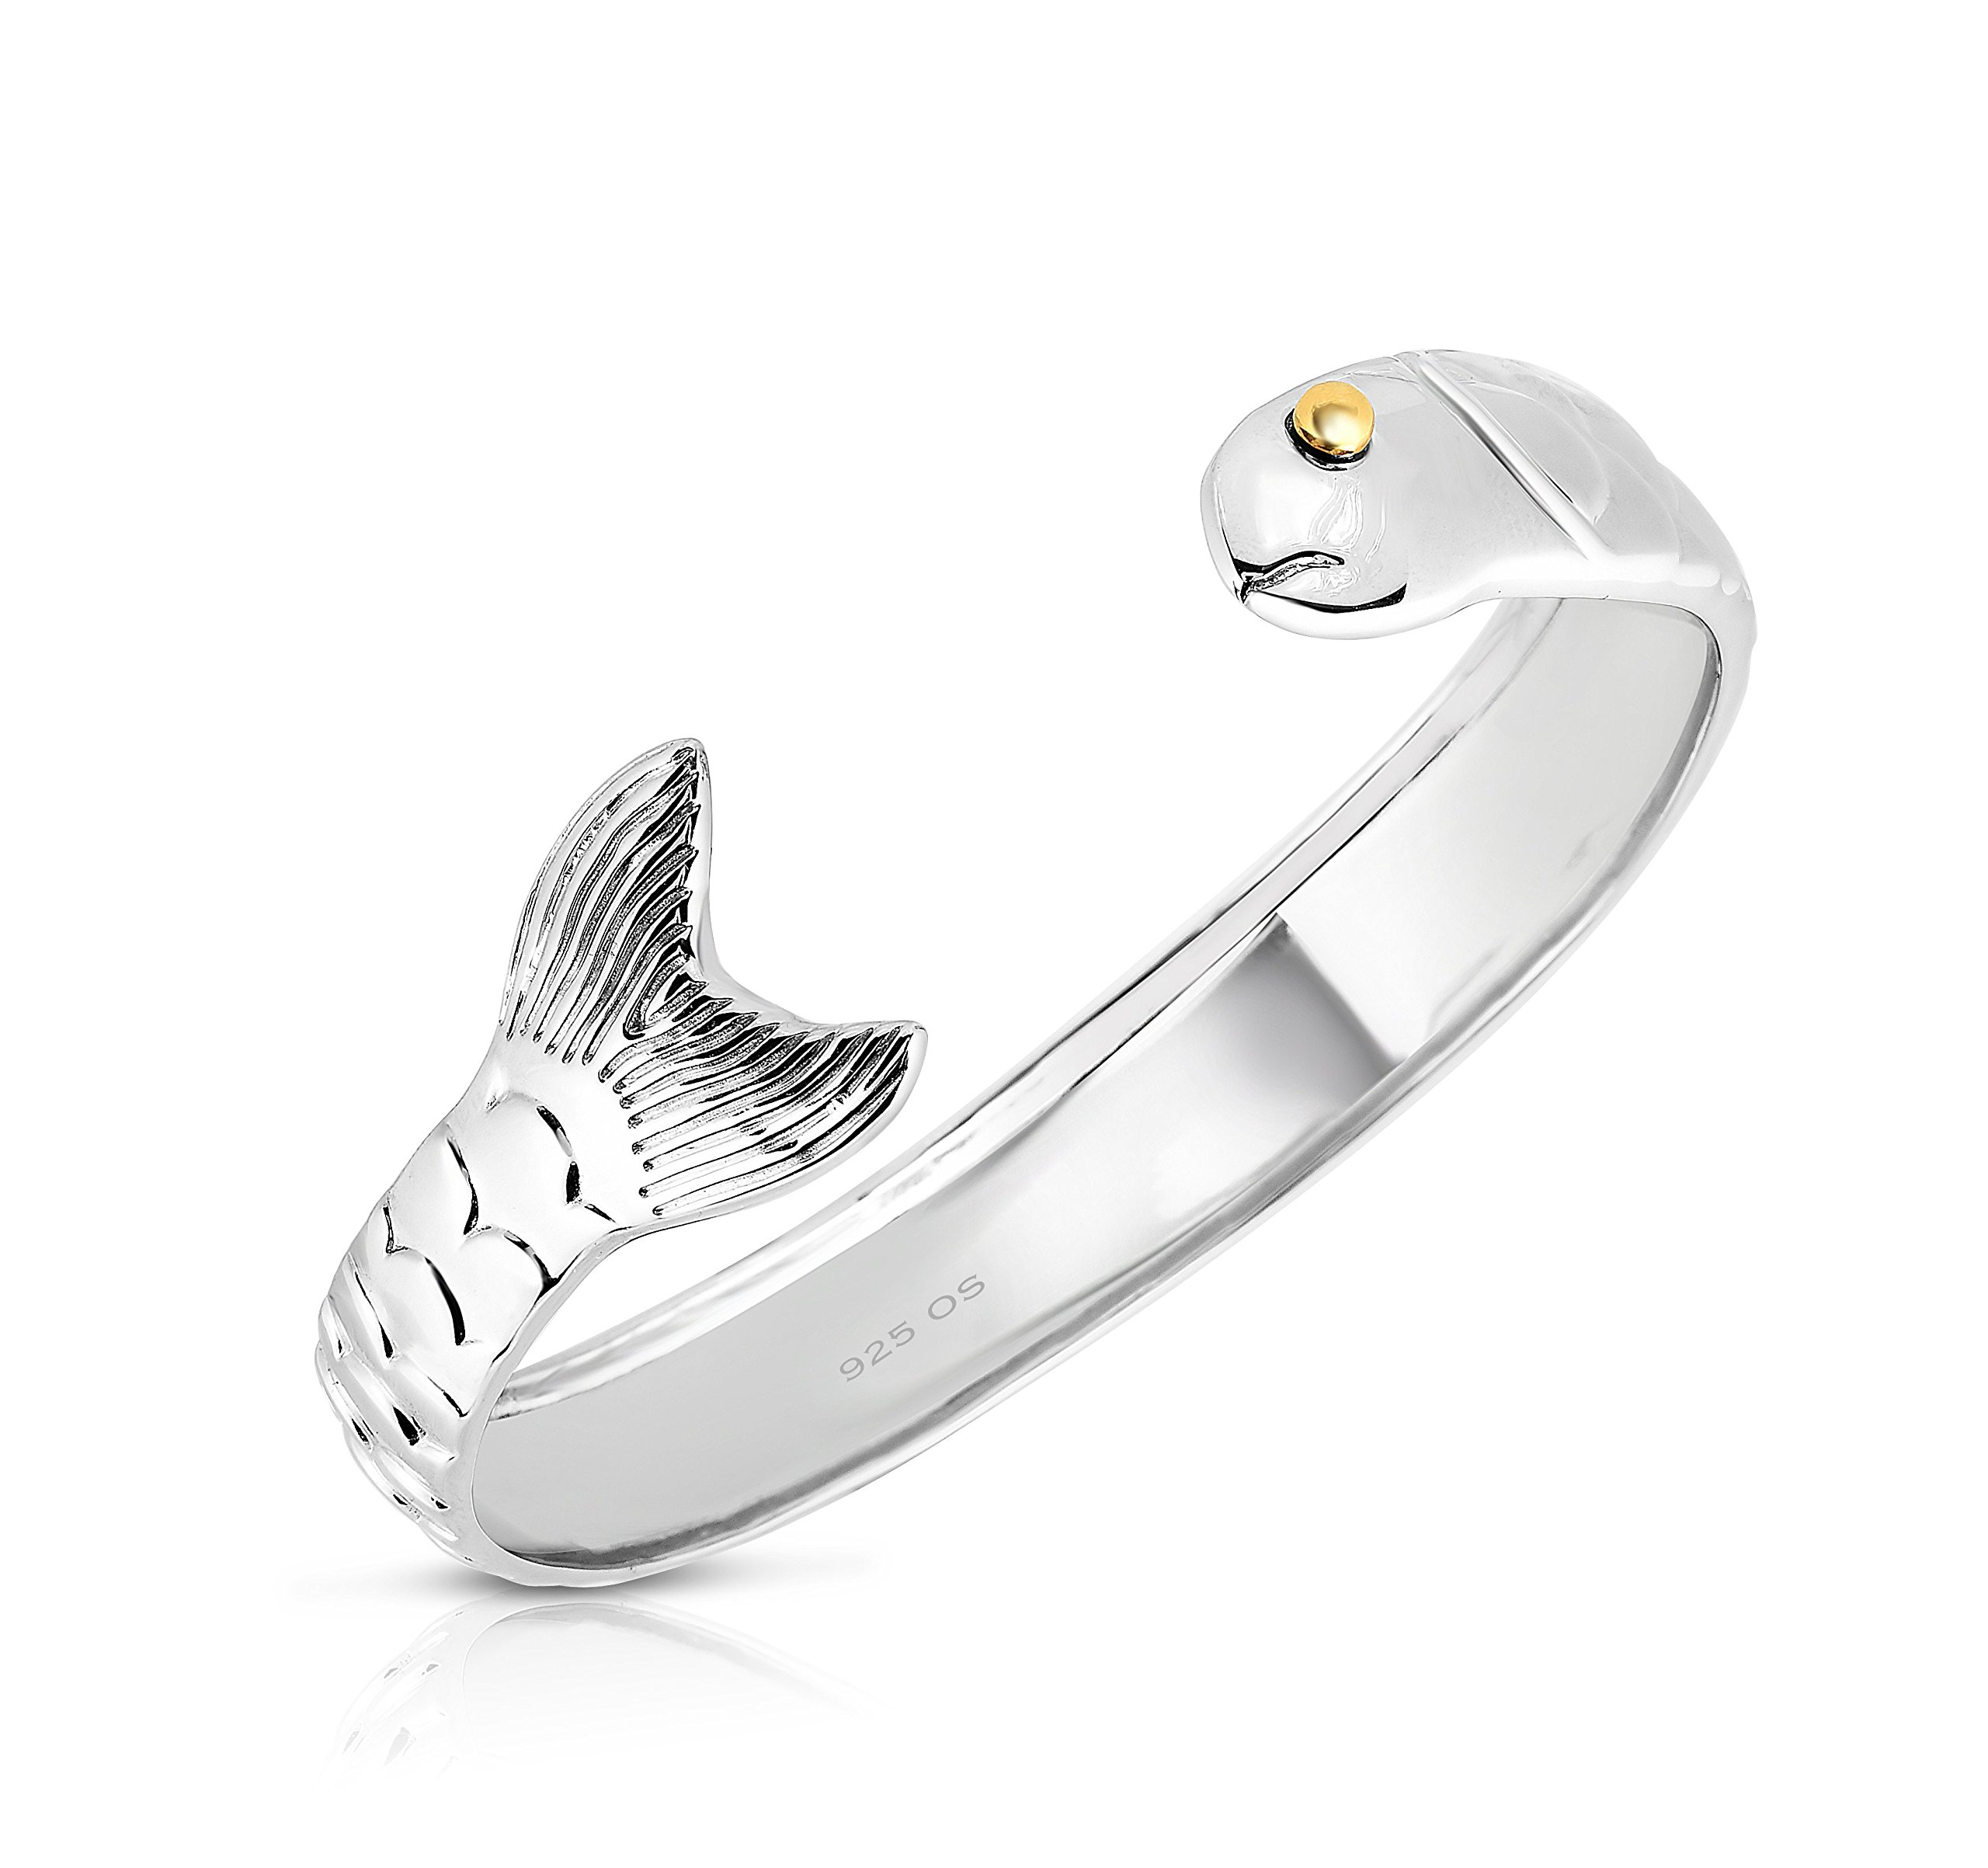 Unique royal jewelry Solid 925 Sterling Silver and 14k Gold Plated Cod Fish Cuff Bracelet (Natural Silver)